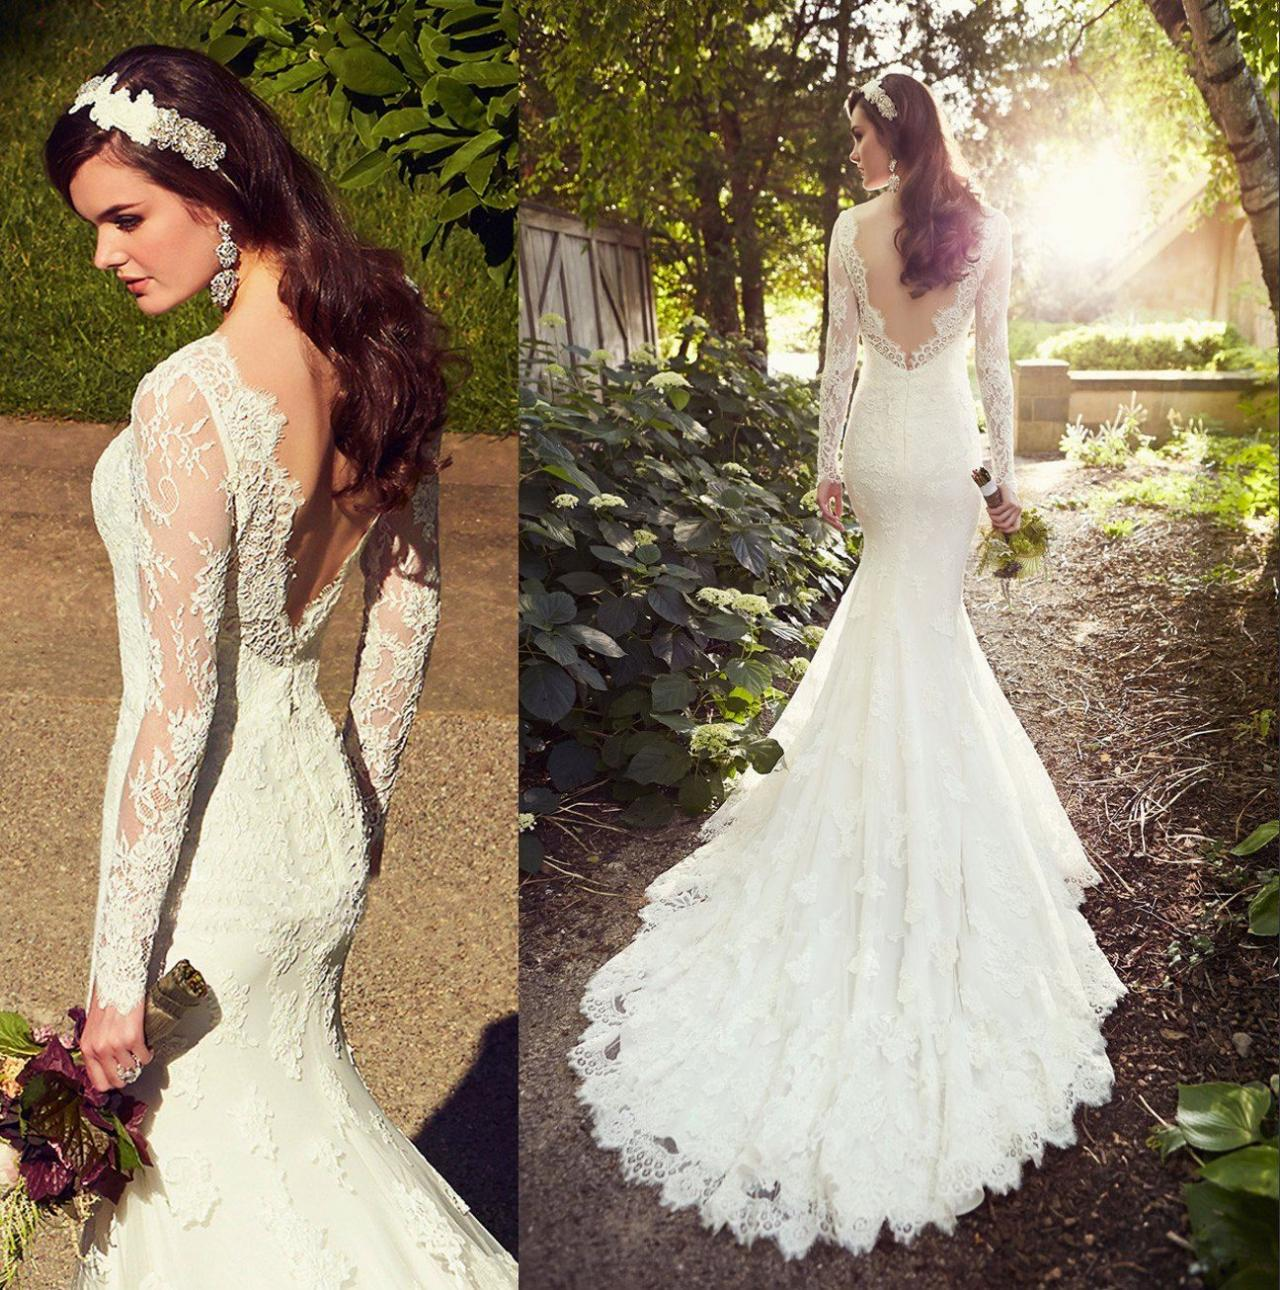 Whiteivory Lace Wedding Dresses Mermaid Wedding Dress Backless